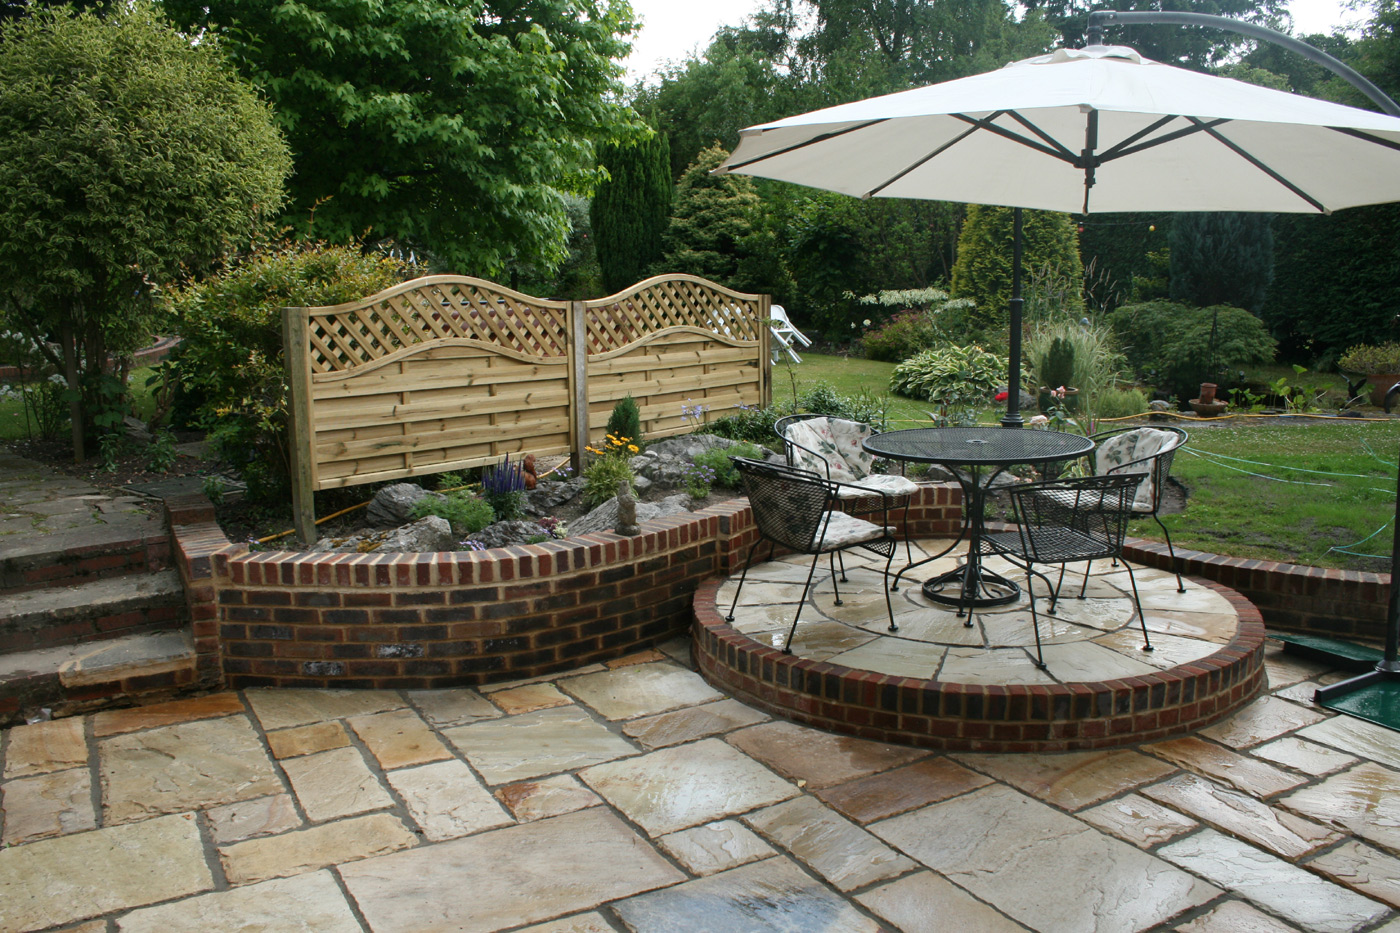 Landscaping and Patio